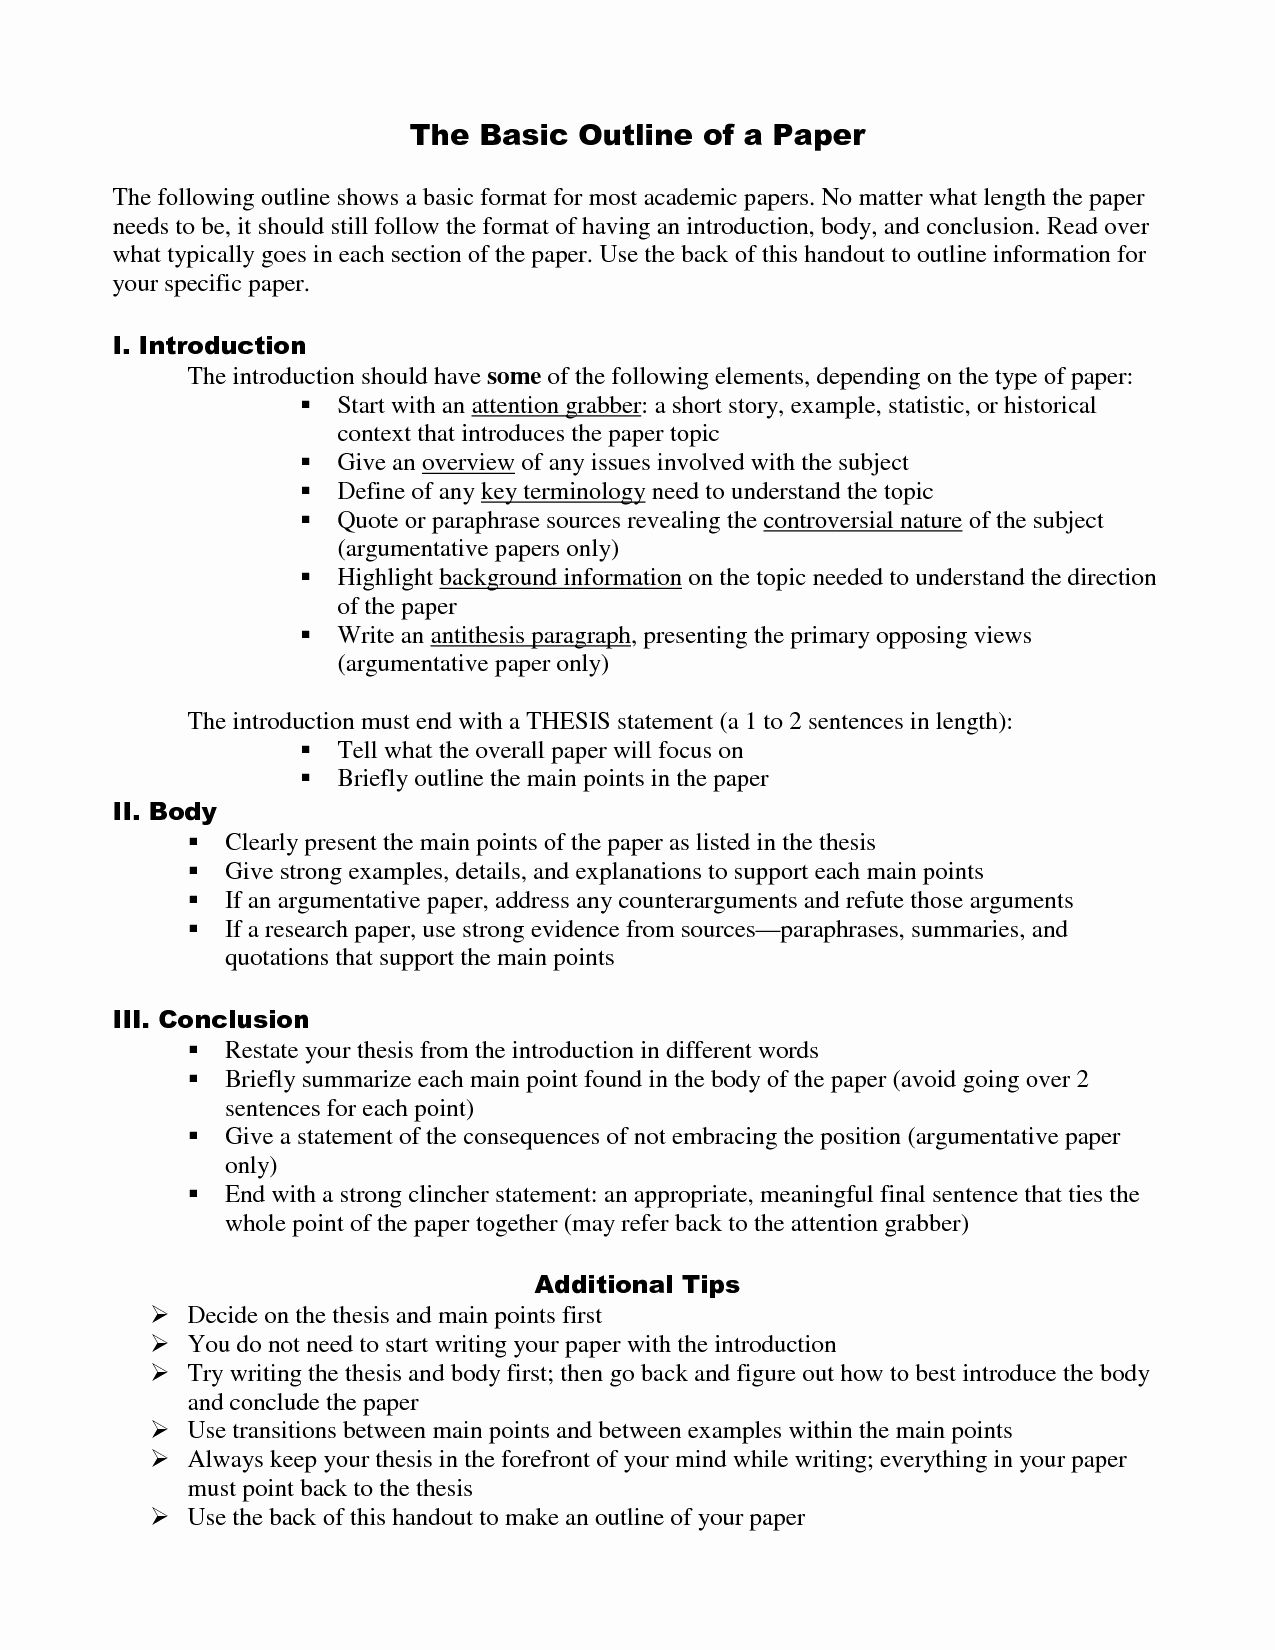 002 Post Traumatic Stress Disorder Research Paper Outline Argumentative Essay On Wondrous Topics Full